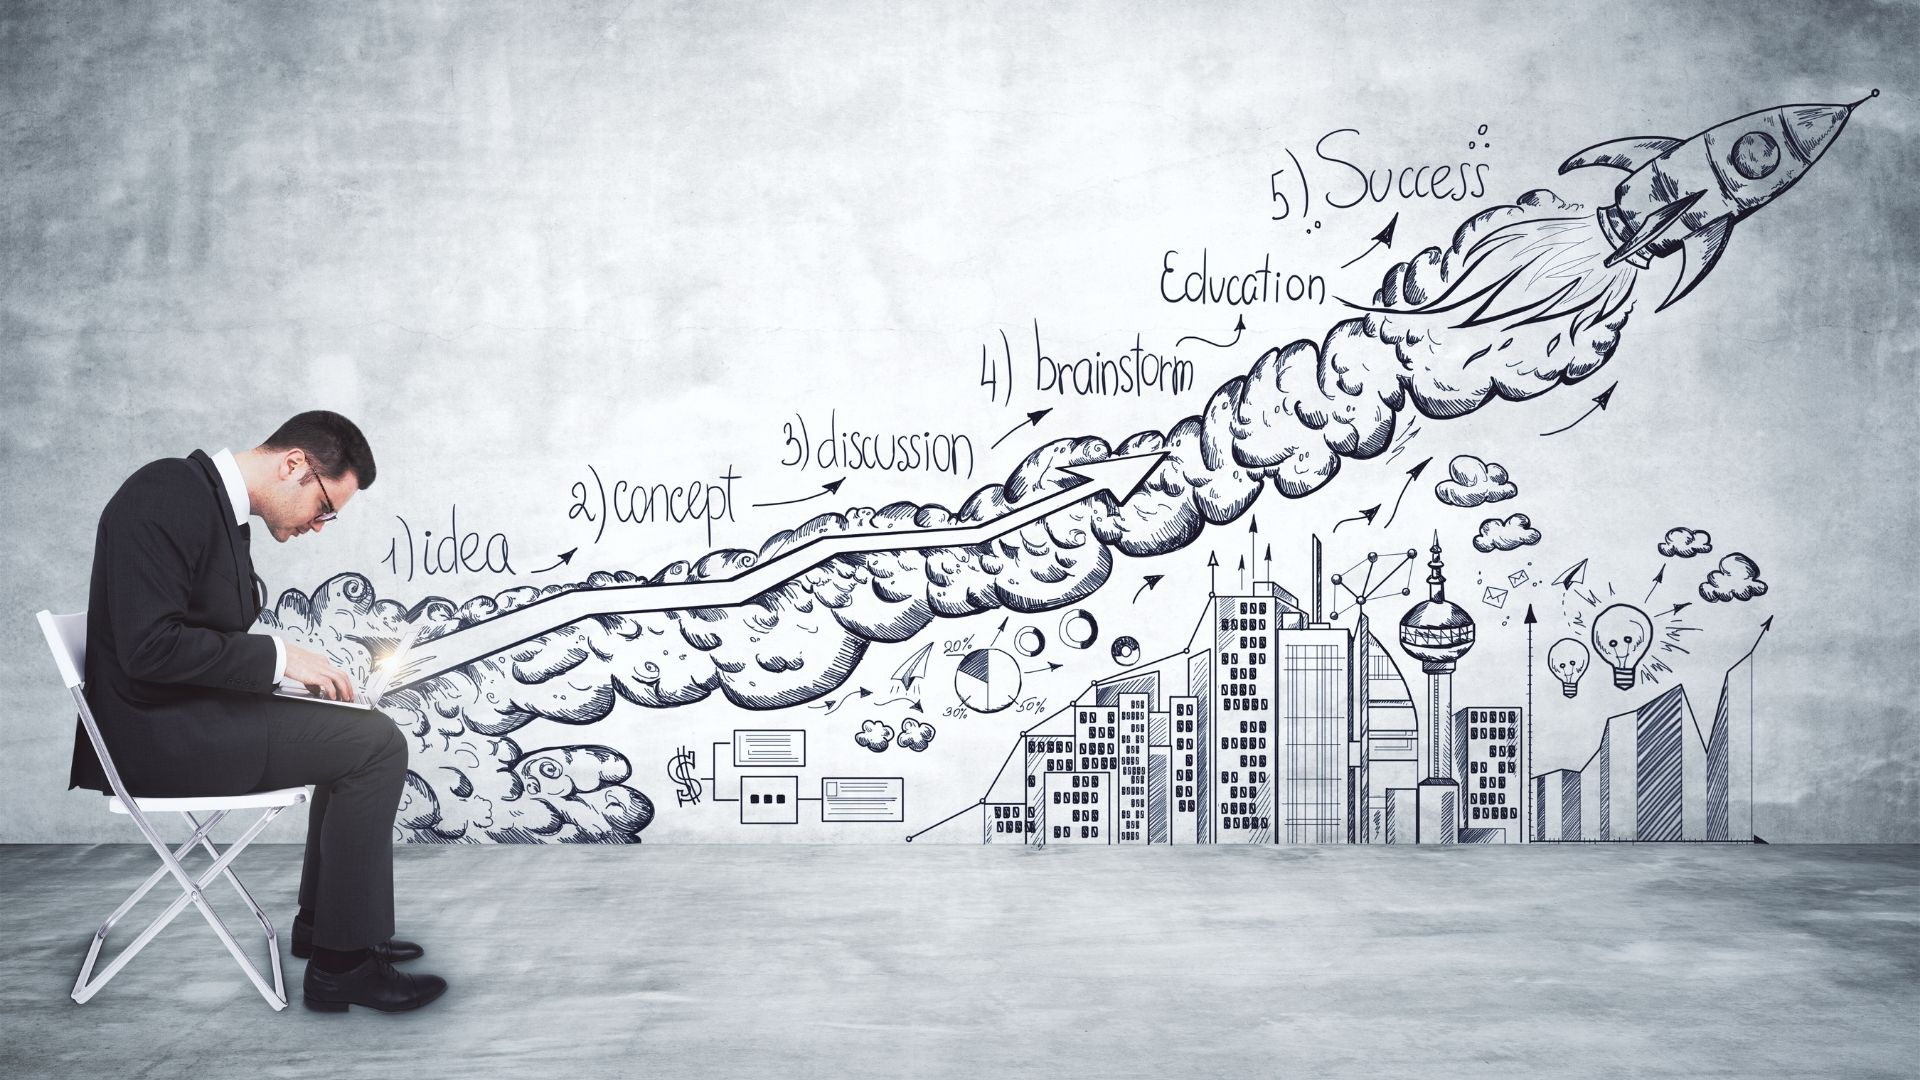 4 Strategies for Quickly Growing Your Startup 31